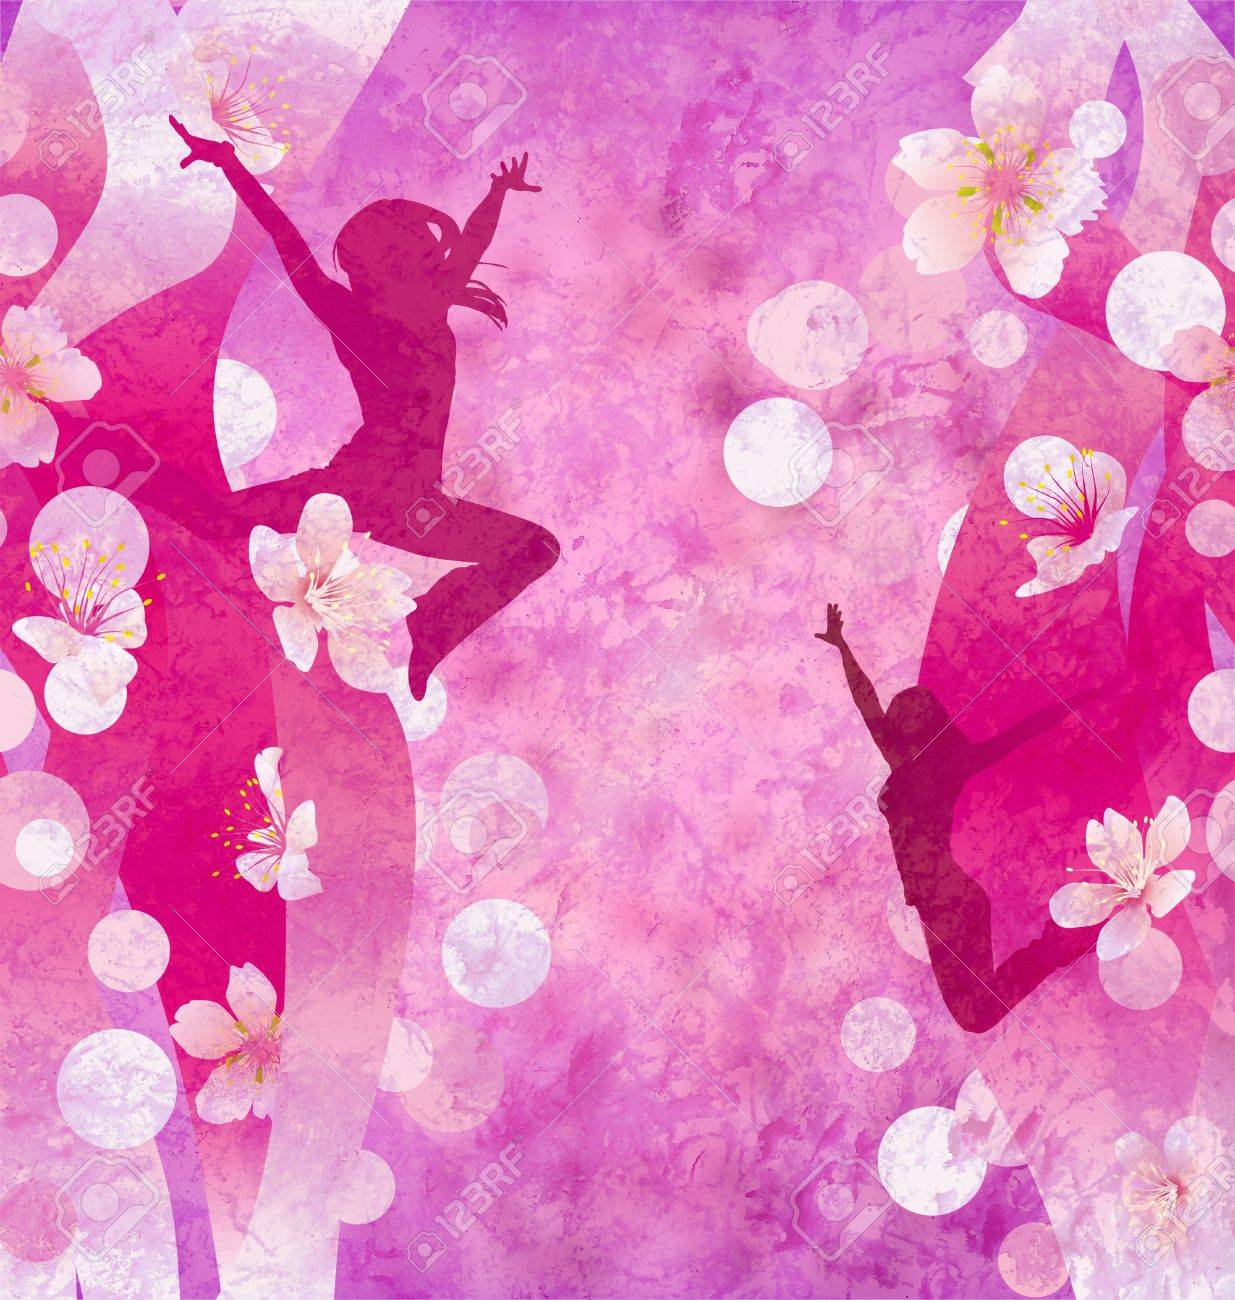 three urban modern dancing women silhuettes on the red or pink grunge background Stock Photo - 14821208